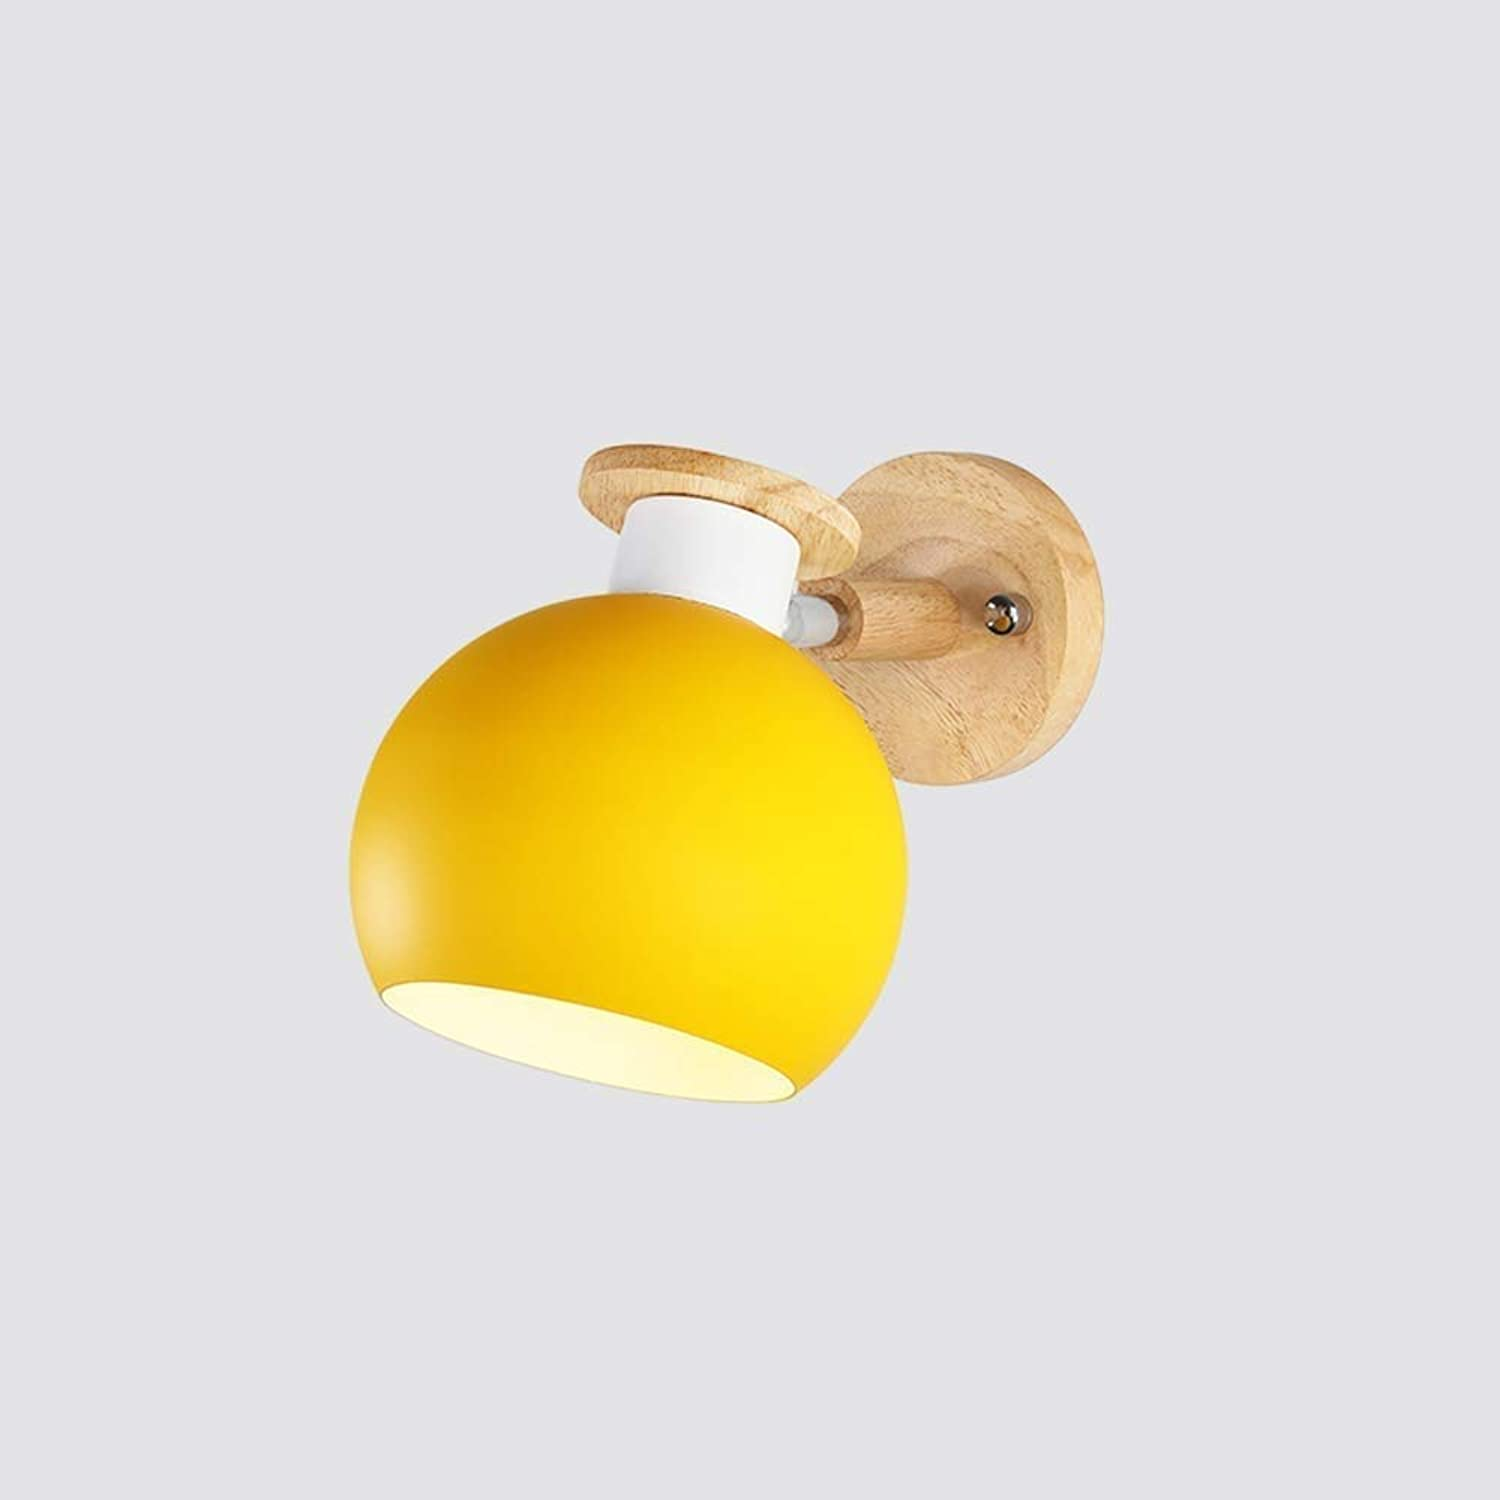 Perfect Home Nordic Wood Wall LED Lamps Metal Iron Wall Light for Bar Cafe Home Lighting Bedroom Bedside Light Home Decor Fixtures Modern E27 Single Head Wall Sconce (color   Yellow) Durable